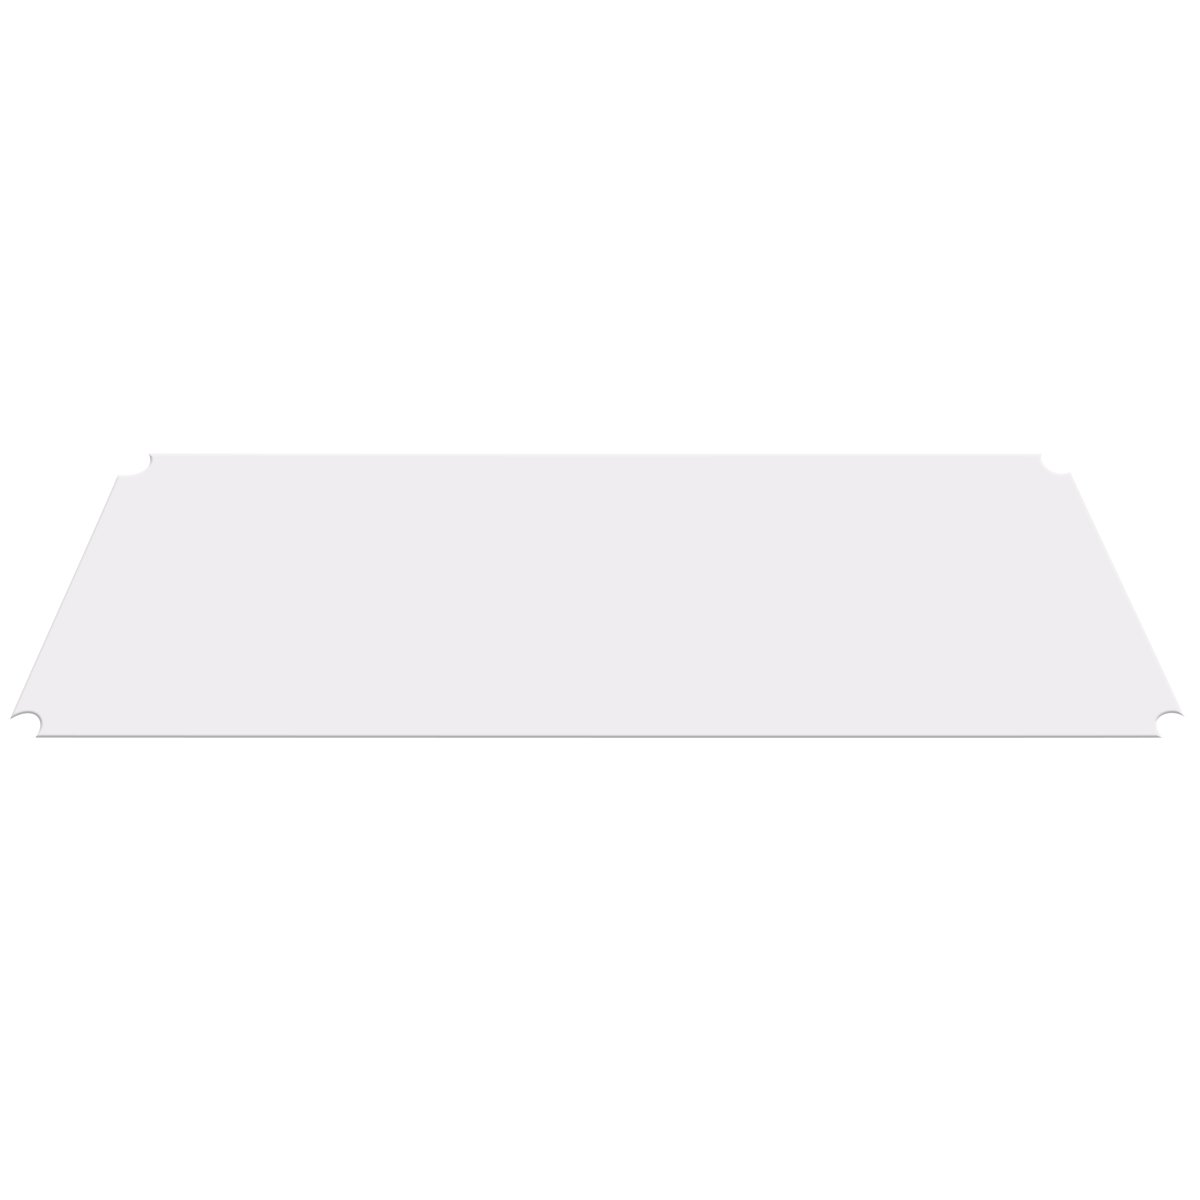 AKRO-MILS  AW2460LINER - Clear Shelf Liner for 24-inch X 60-inch Chrome Wire Shelf - Pack of 4